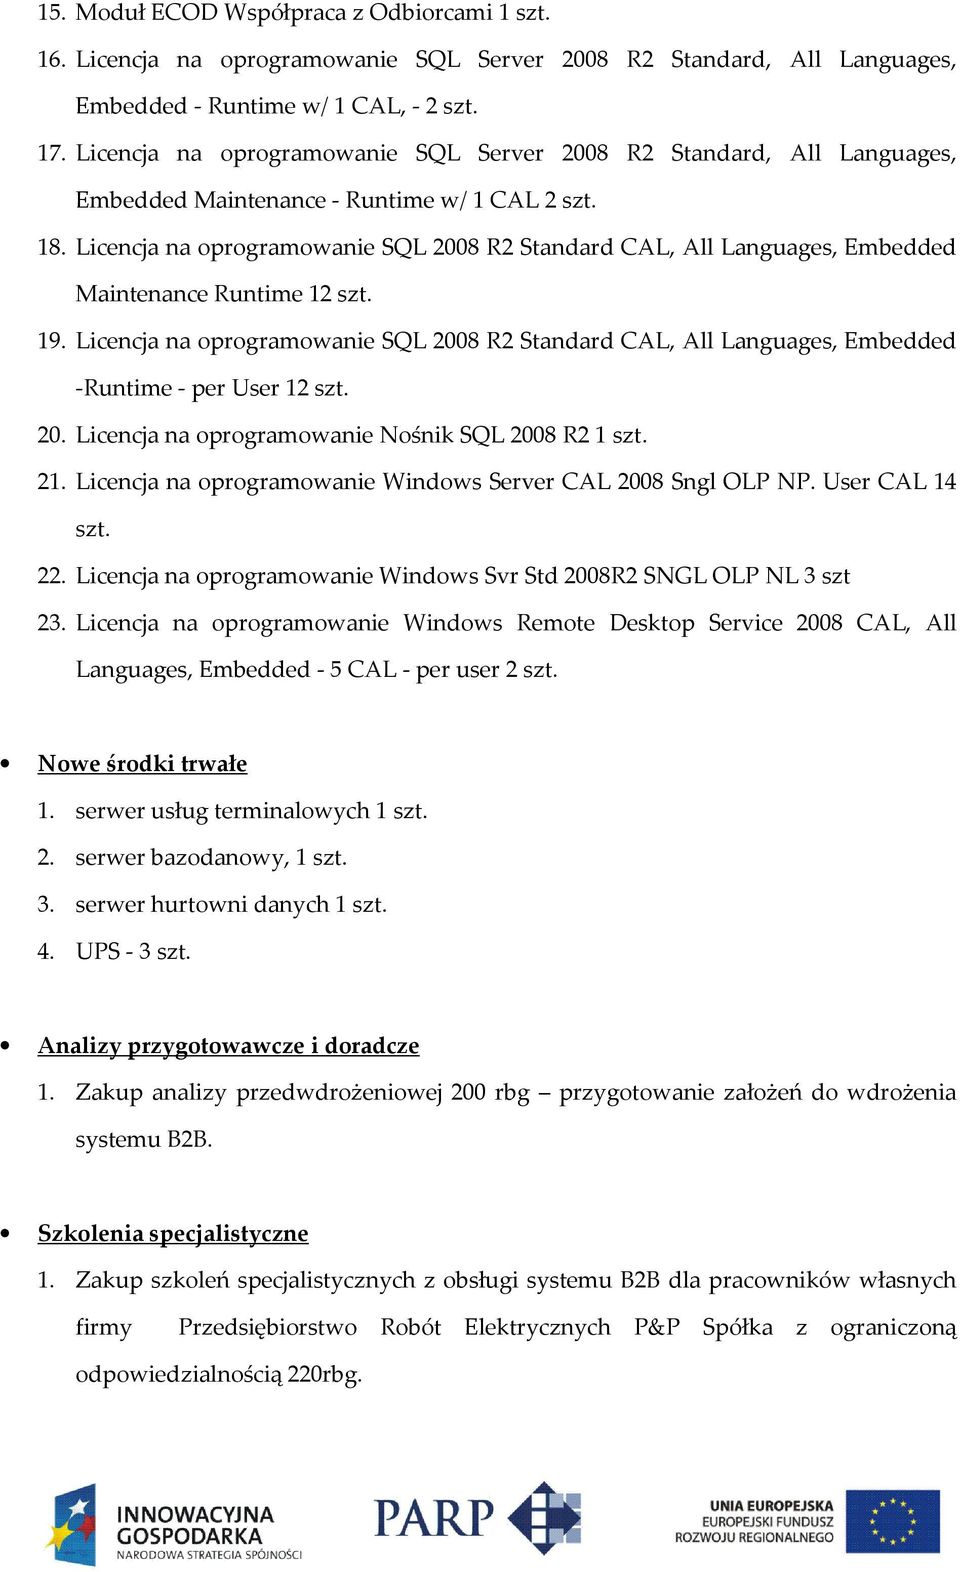 Licencja na oprogramowanie SQL 2008 R2 Standard CAL, All Languages, Embedded Maintenance Runtime 12 szt. 19.